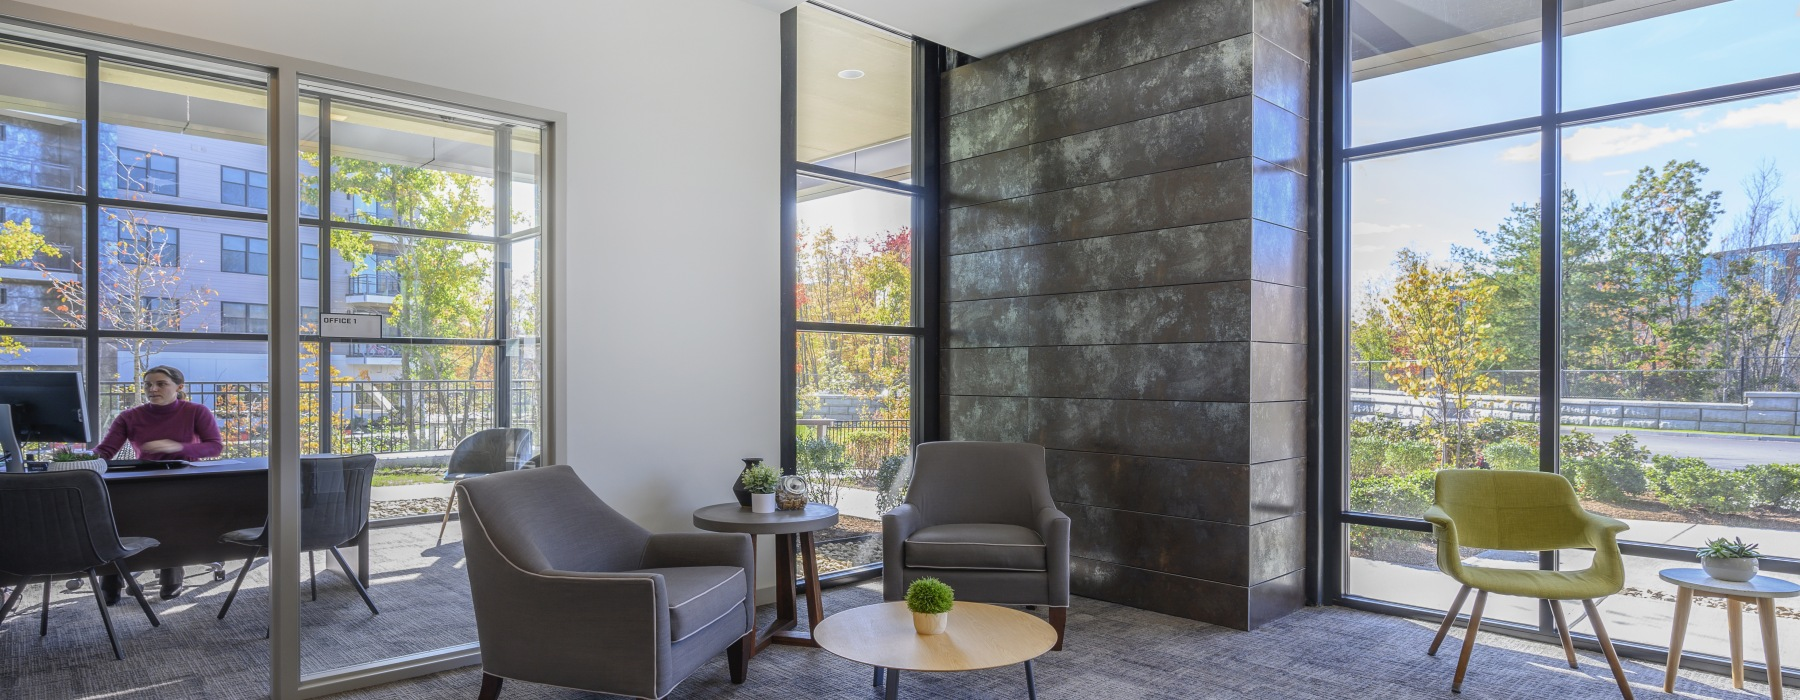 Sitting area and leasing office with leasing consultant sitting at her desk. Floor-to-ceiling windows with a view to the courtyard.